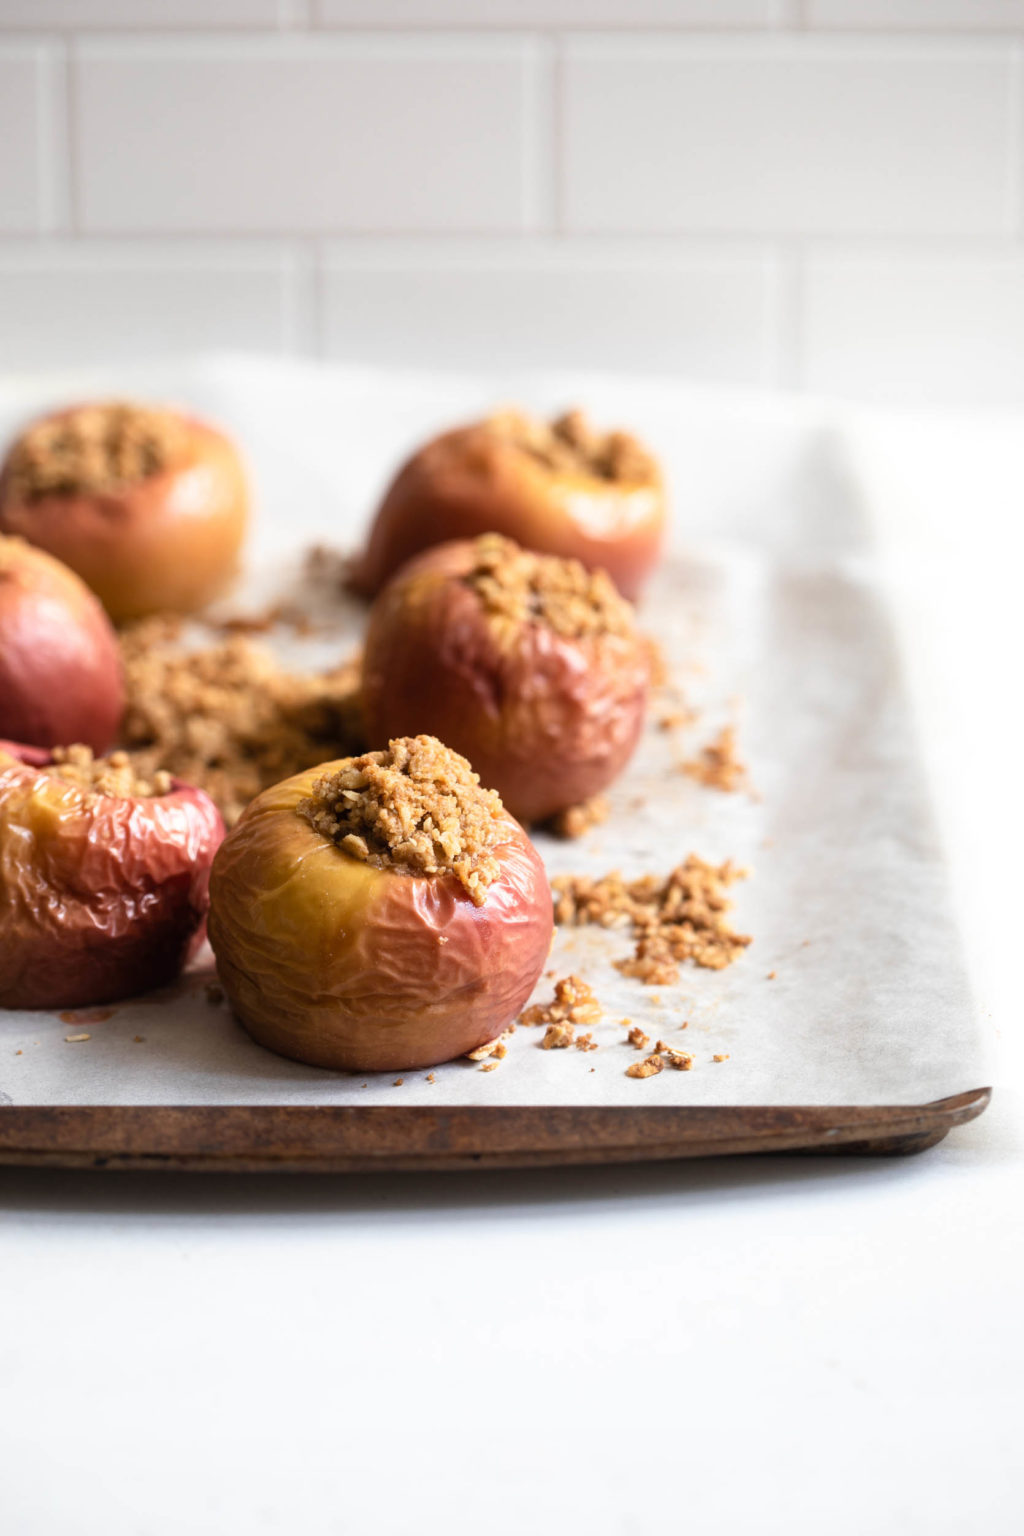 The baking tray lined with parchment paper can hold six baked apple fillings and parchment breadcrumbs.